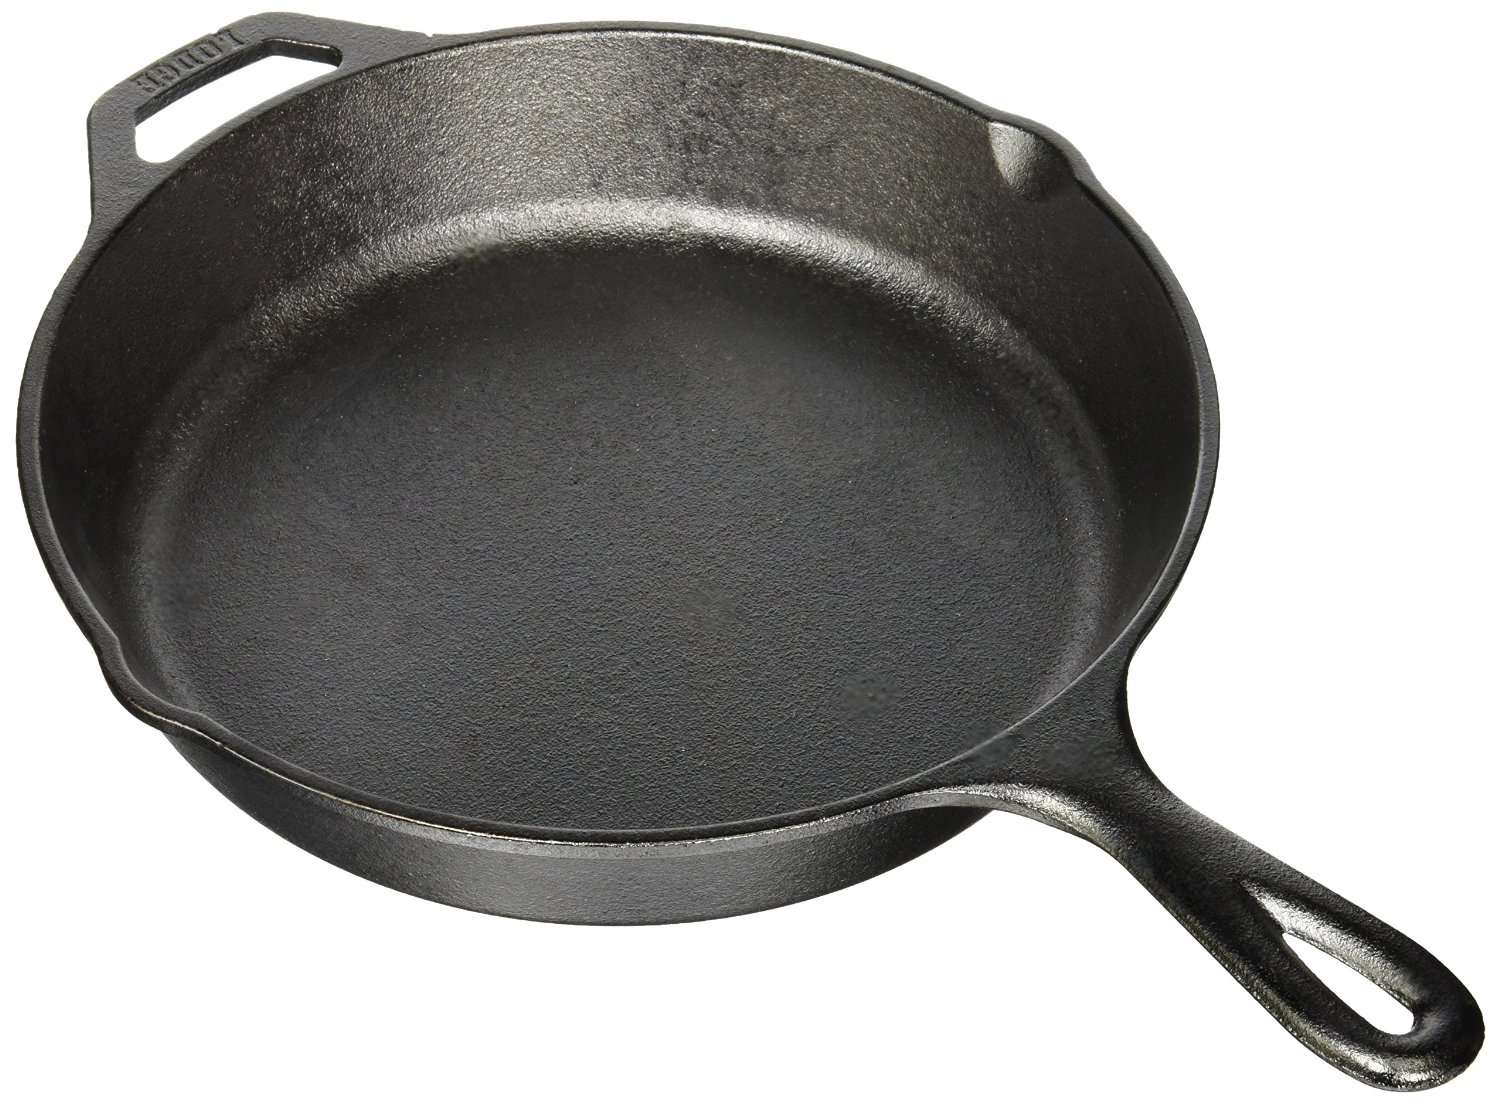 Pre-Seasoned Cast-Iron Skillet 10.25-inch